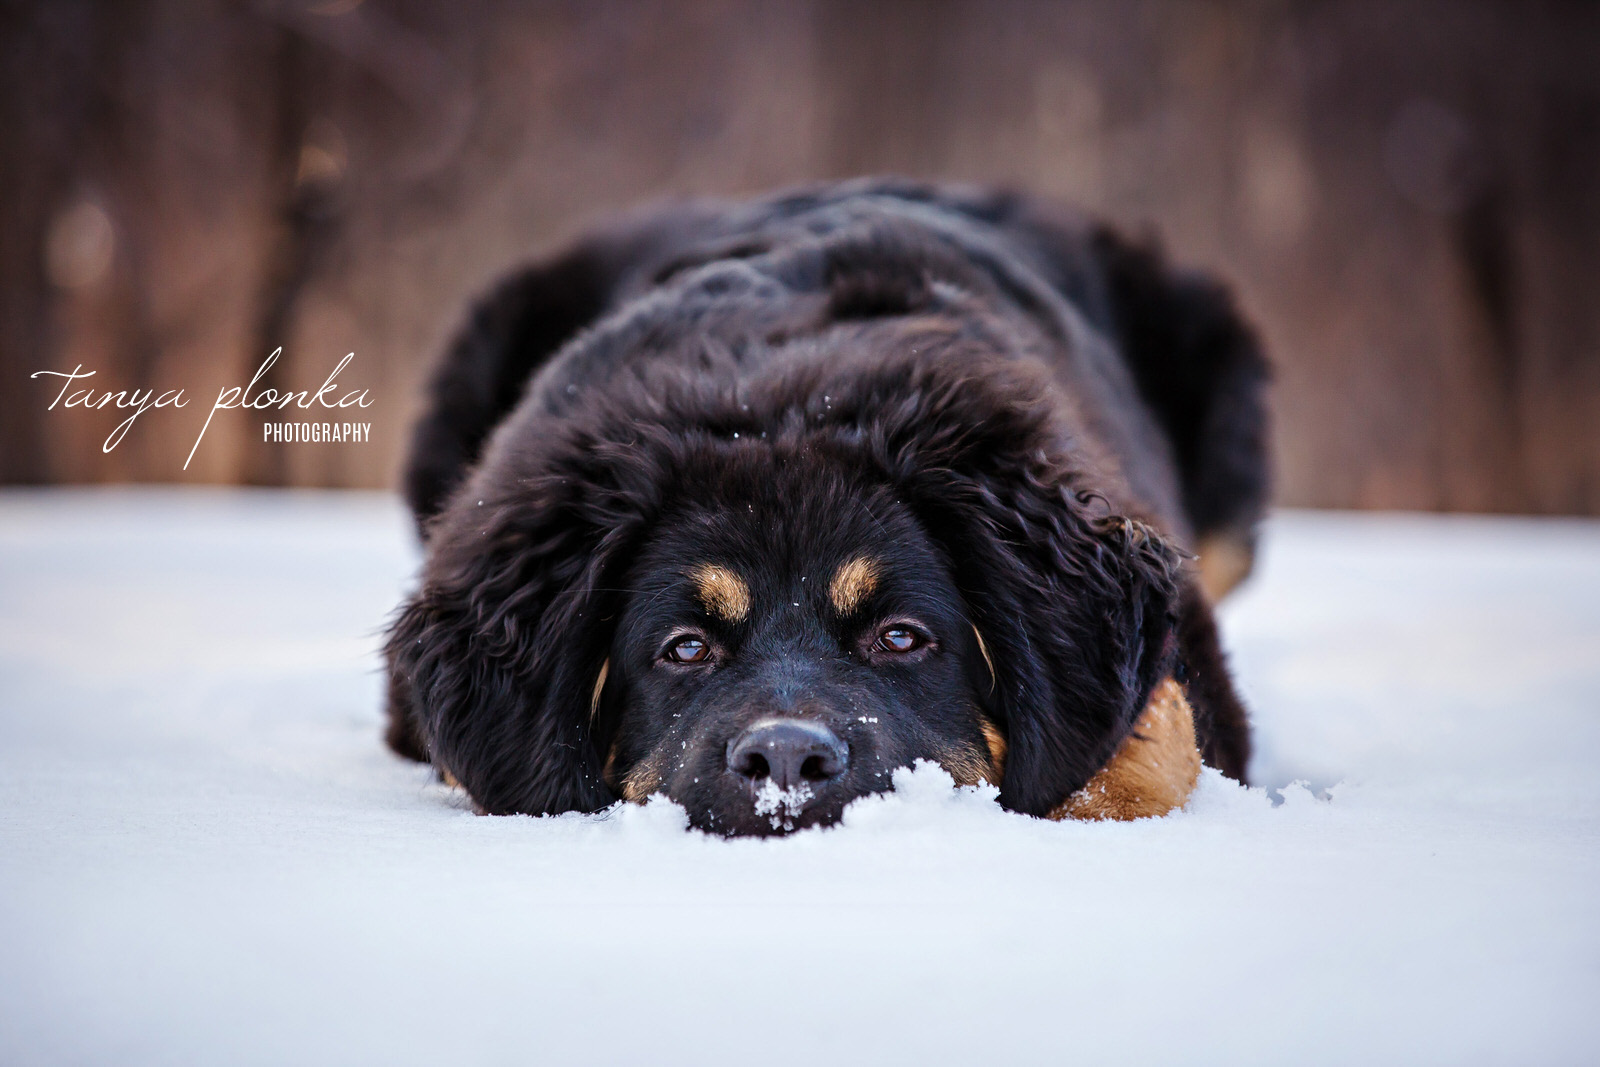 Puppy laying in snowbank with snow on nose